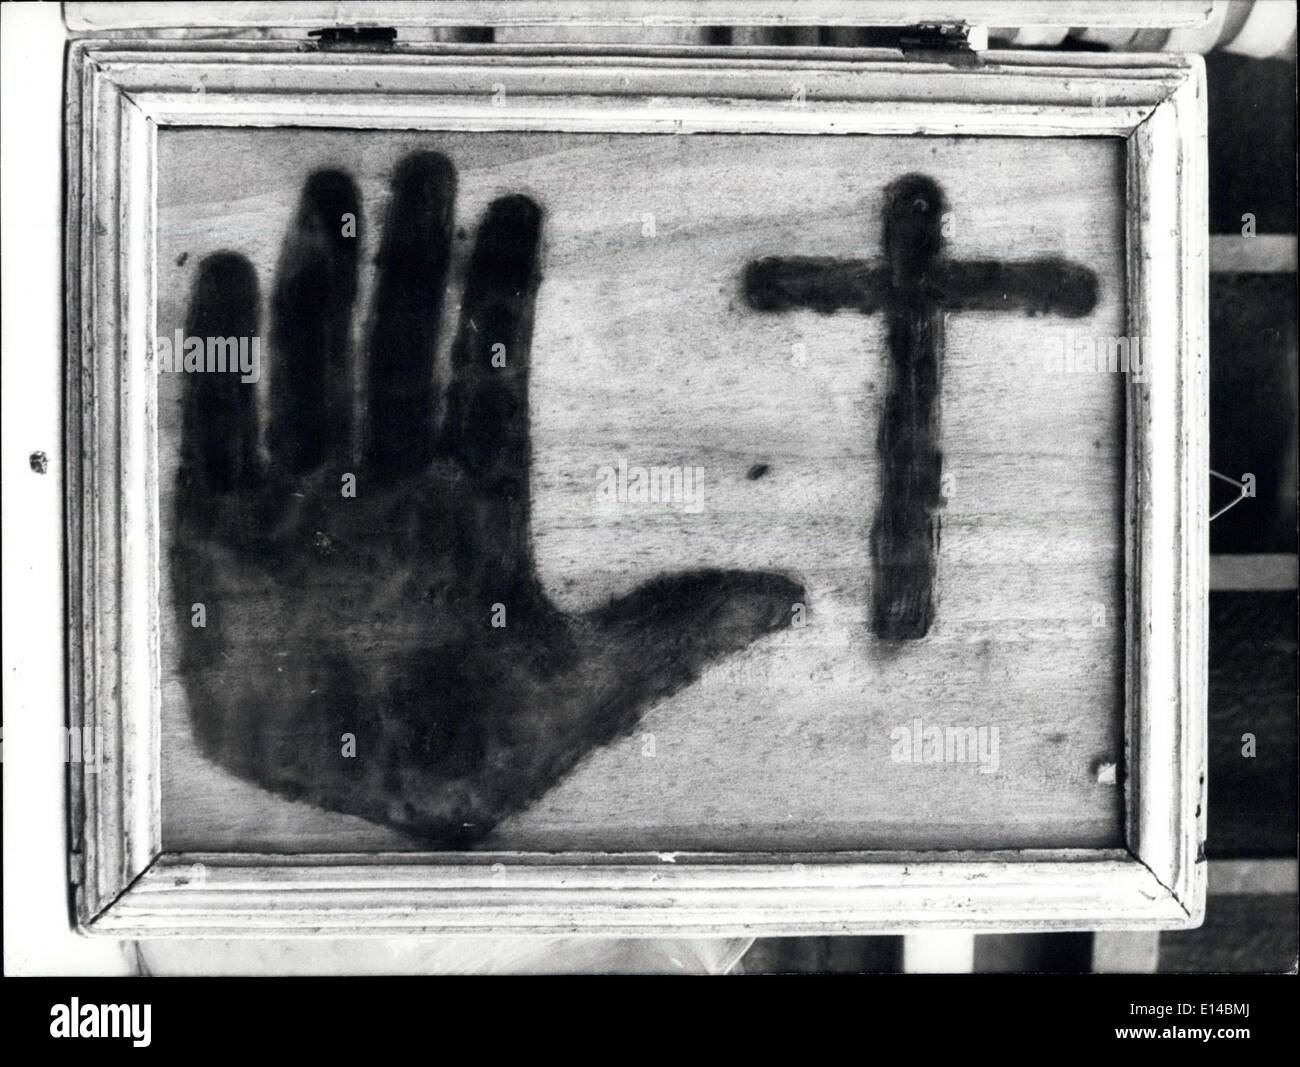 Apr. 17, 2012 - The Print of the hand and the cross made by a dead, as the Witness of sister Sabelle Fornari, abbess of Monastery of St. Francis, in Todi. It may belong a certain father Panzini, died on 1731, who should impress it on the table where the sister used for her work. - Stock Image